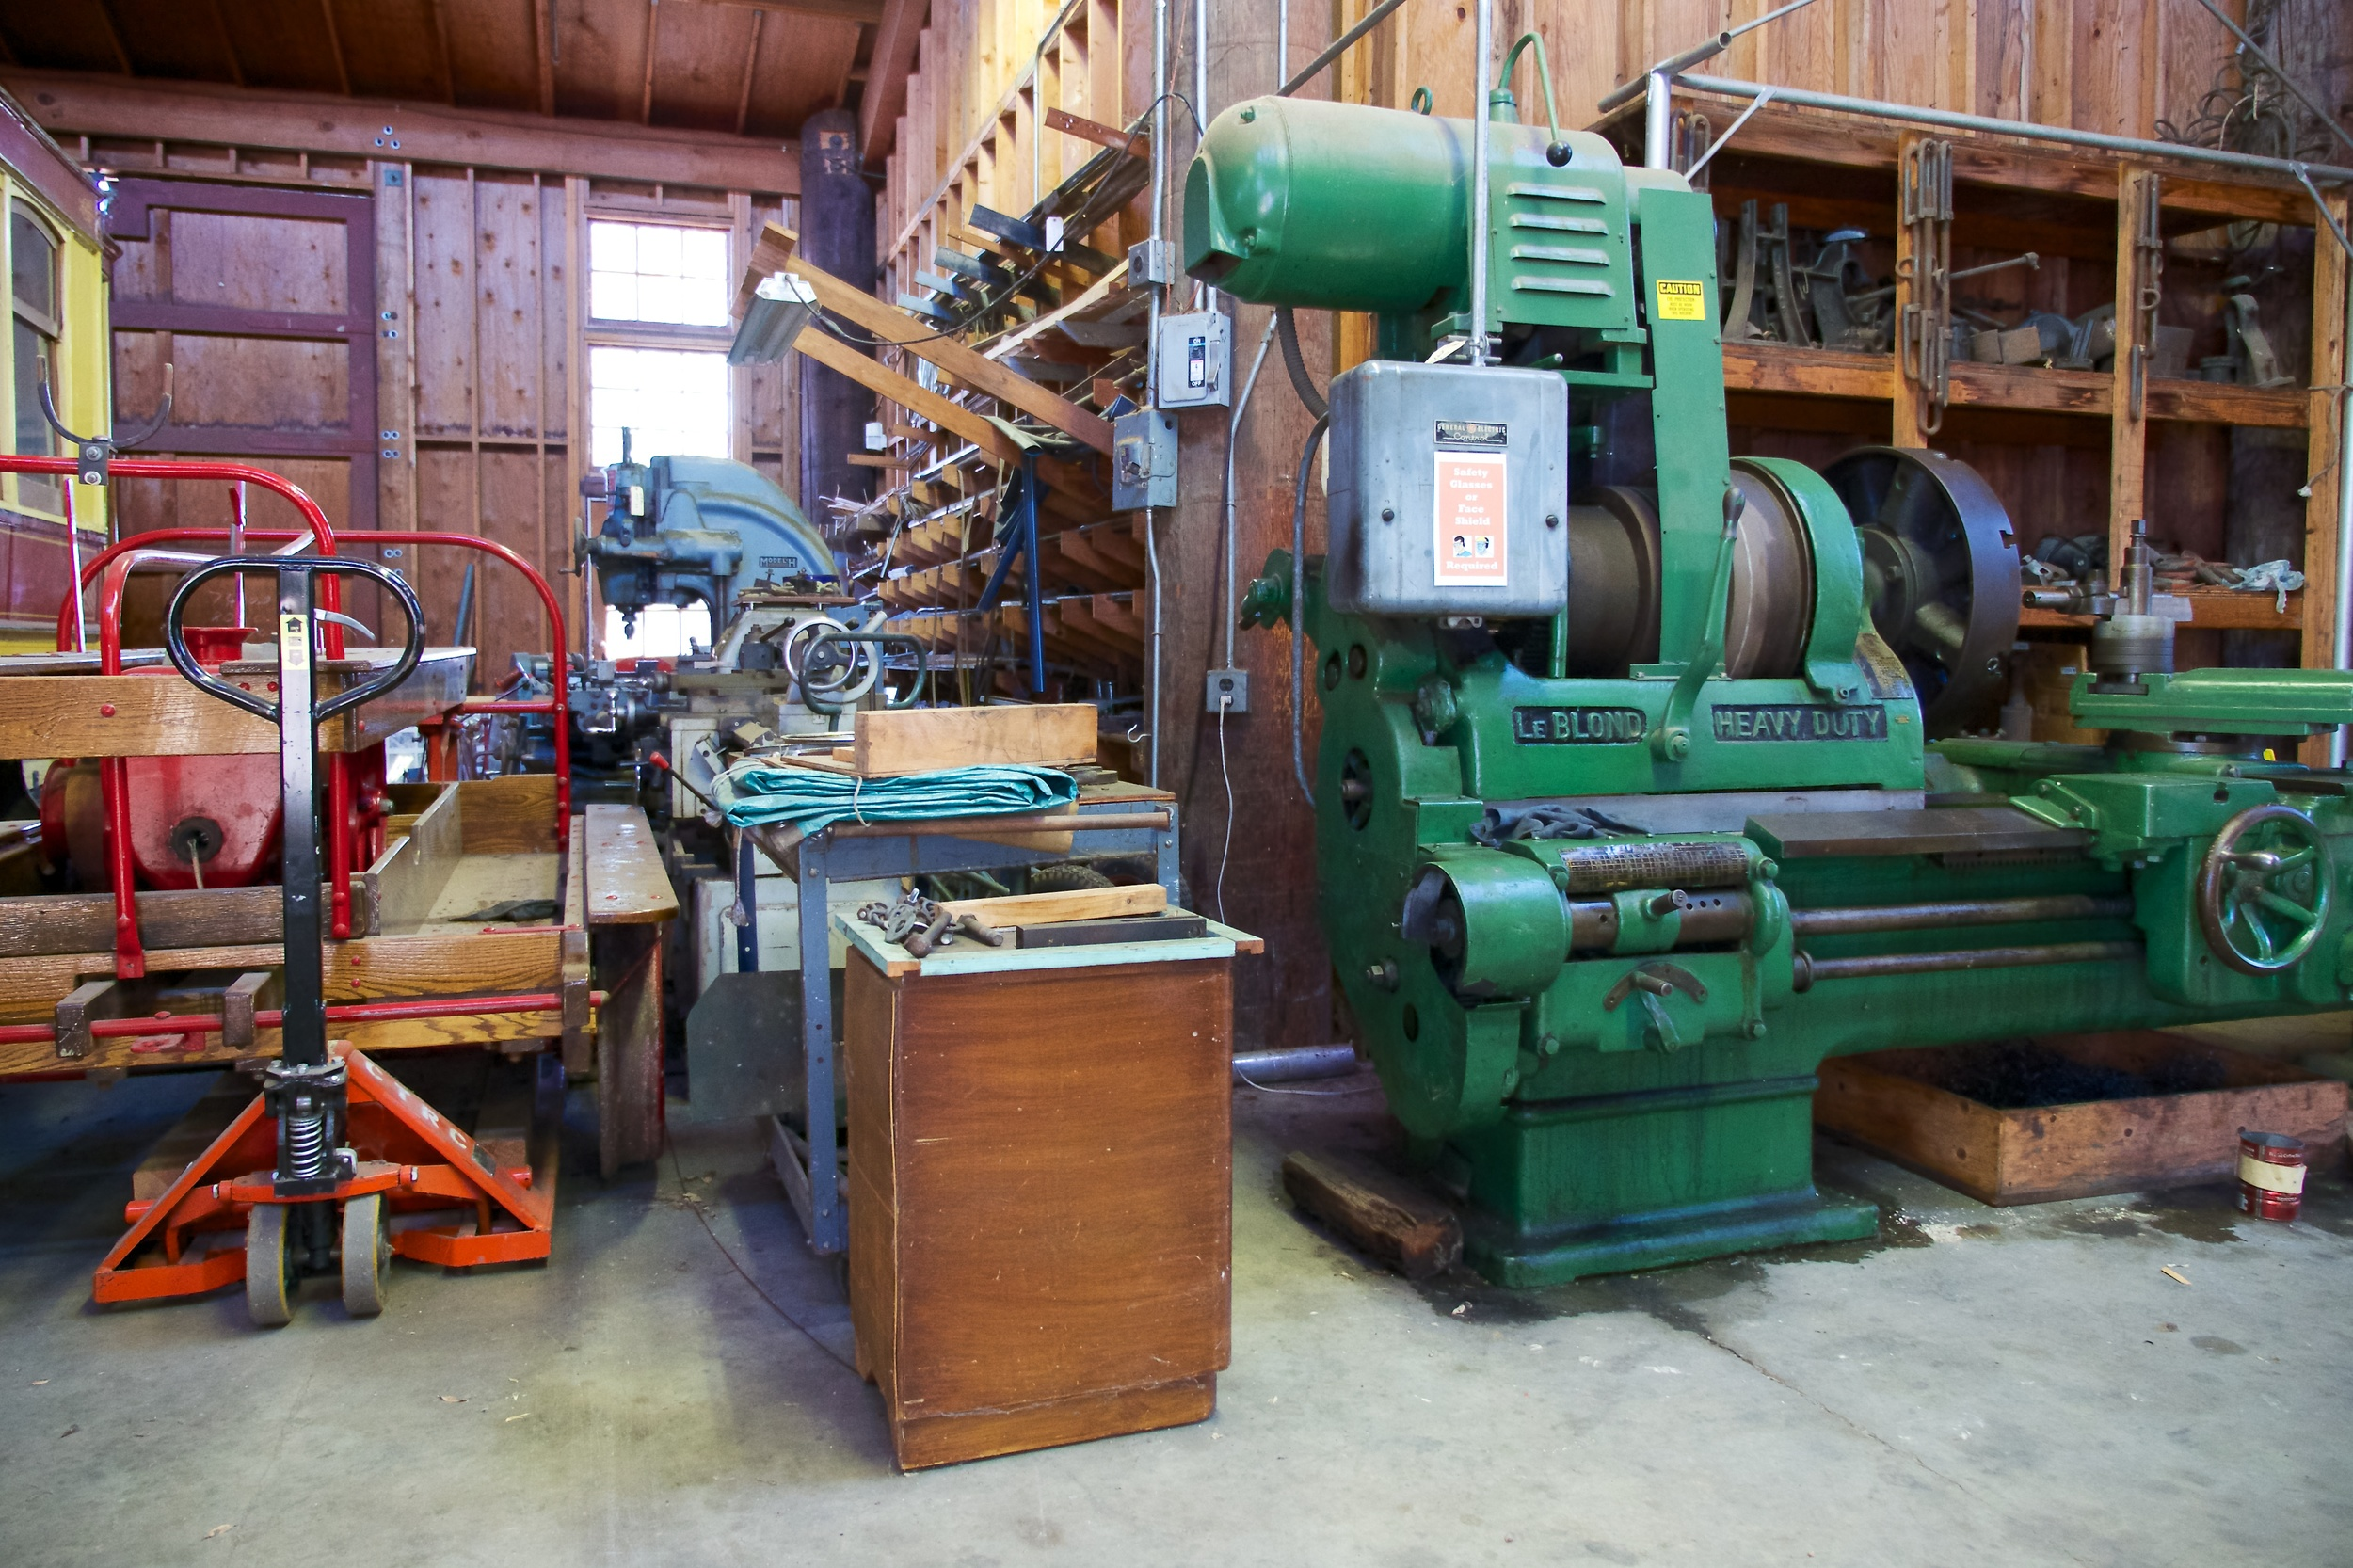 Machinery at the trolly barn